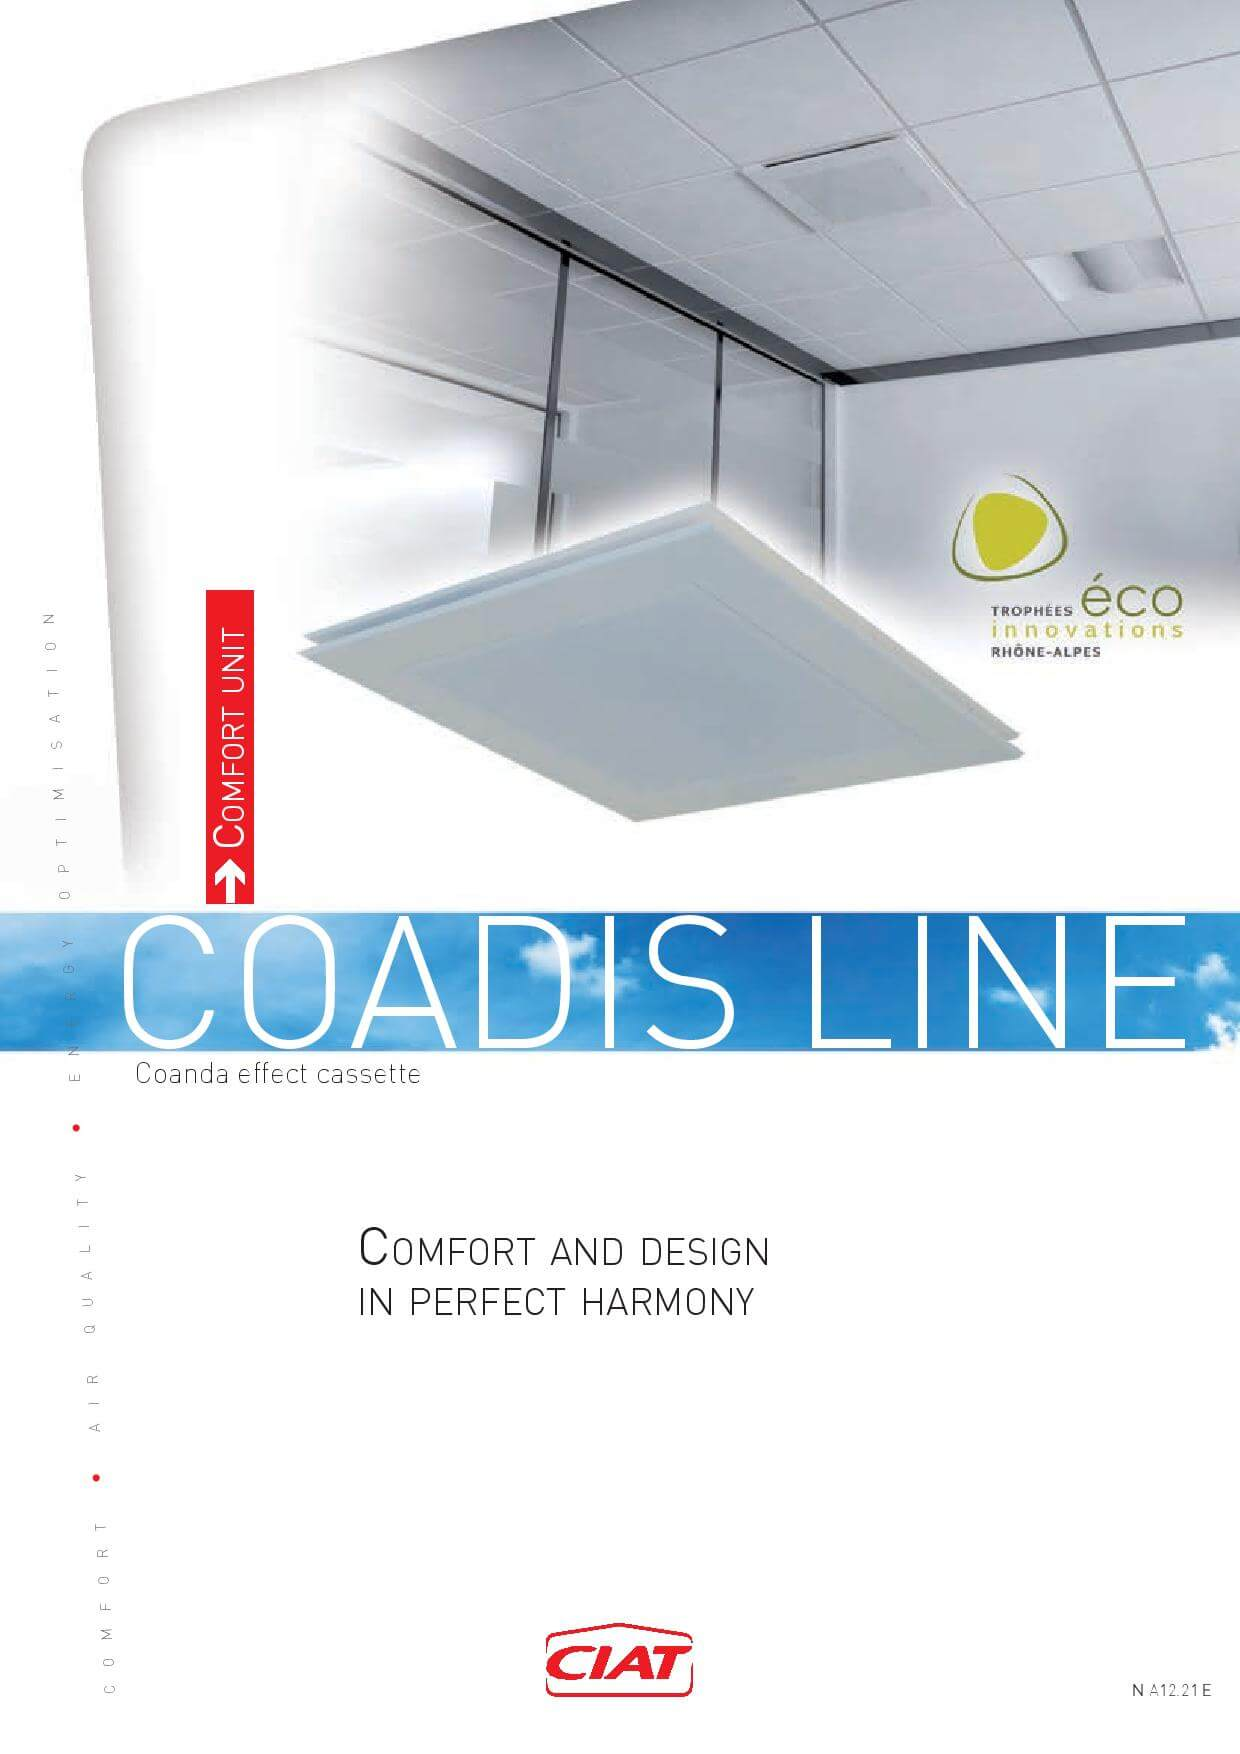 Coadis Line Brochure Ciat Air Conditioning And Heating